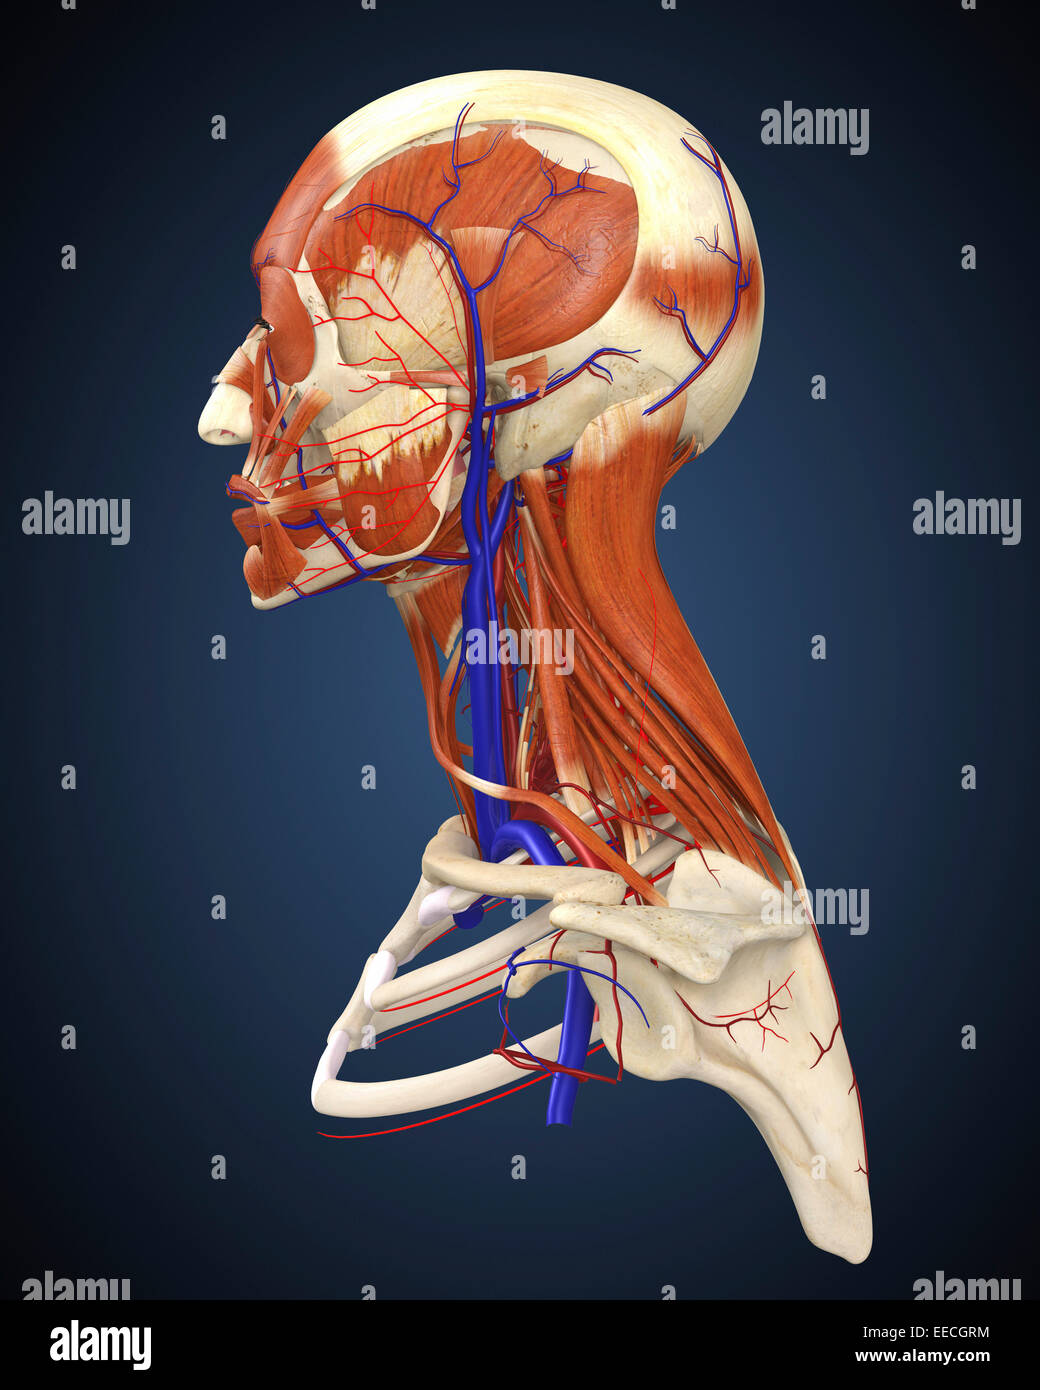 hight resolution of side view of human face with bones muscles and circulatory system